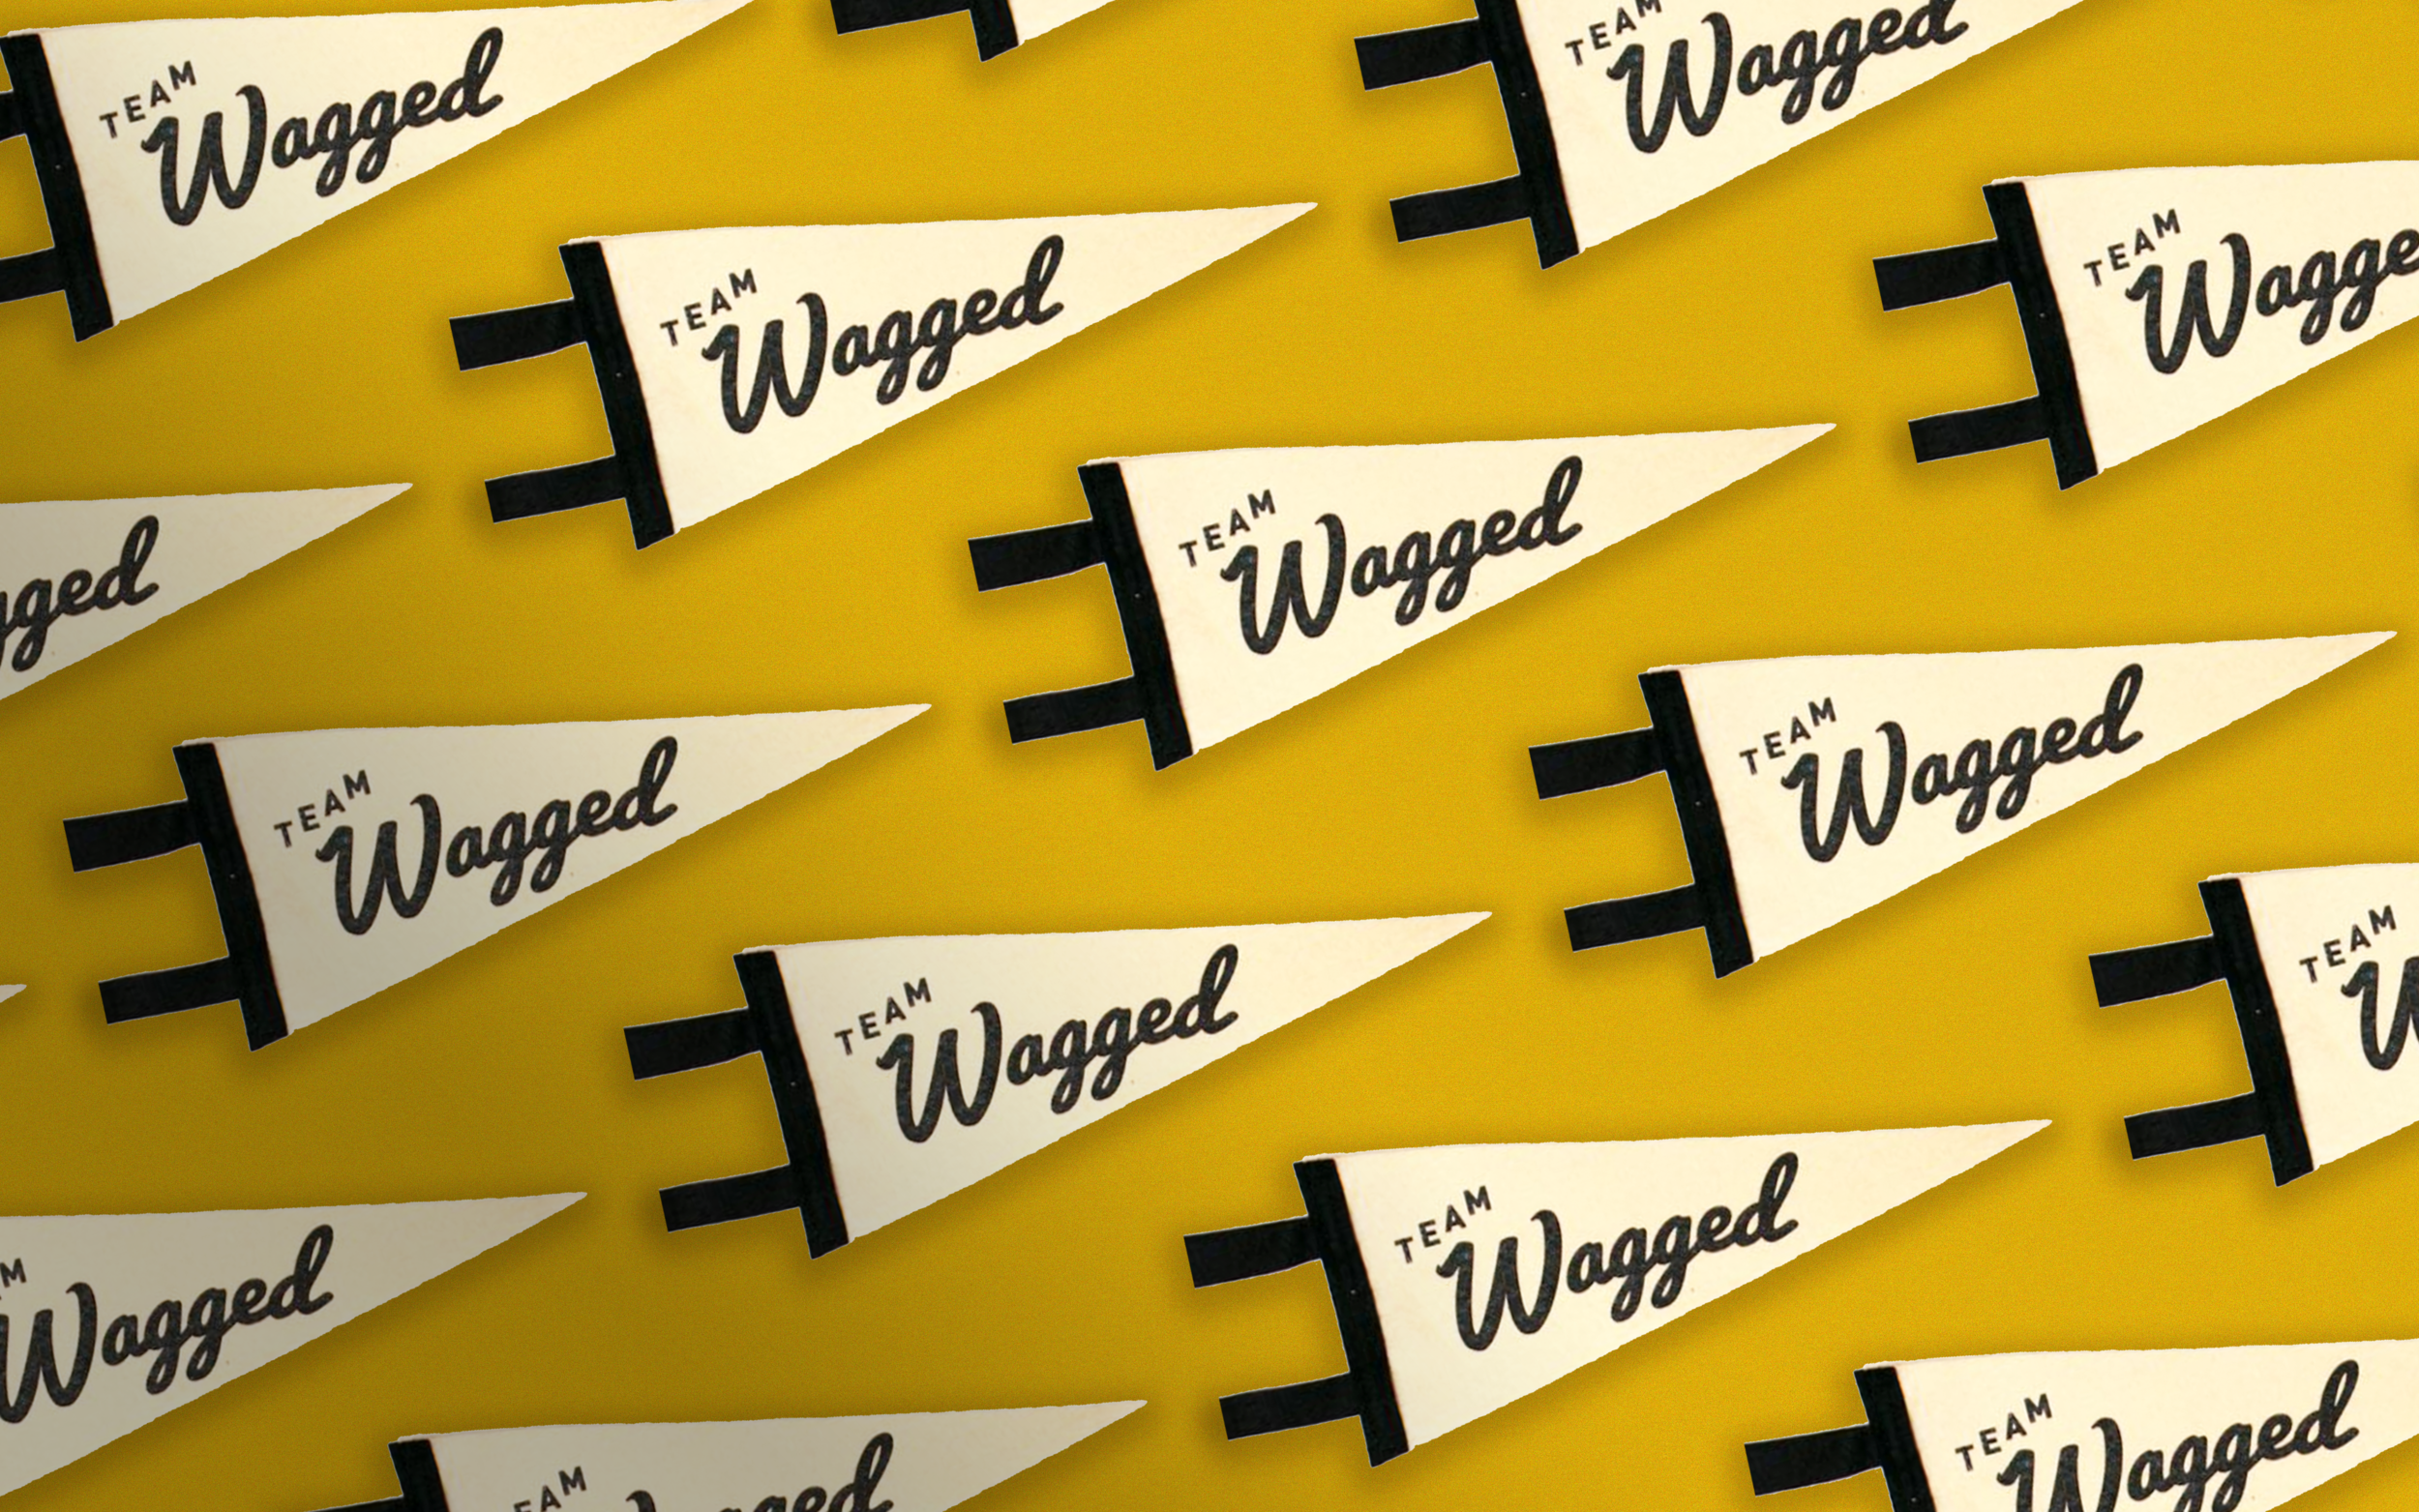 Wagged_Pennants.png